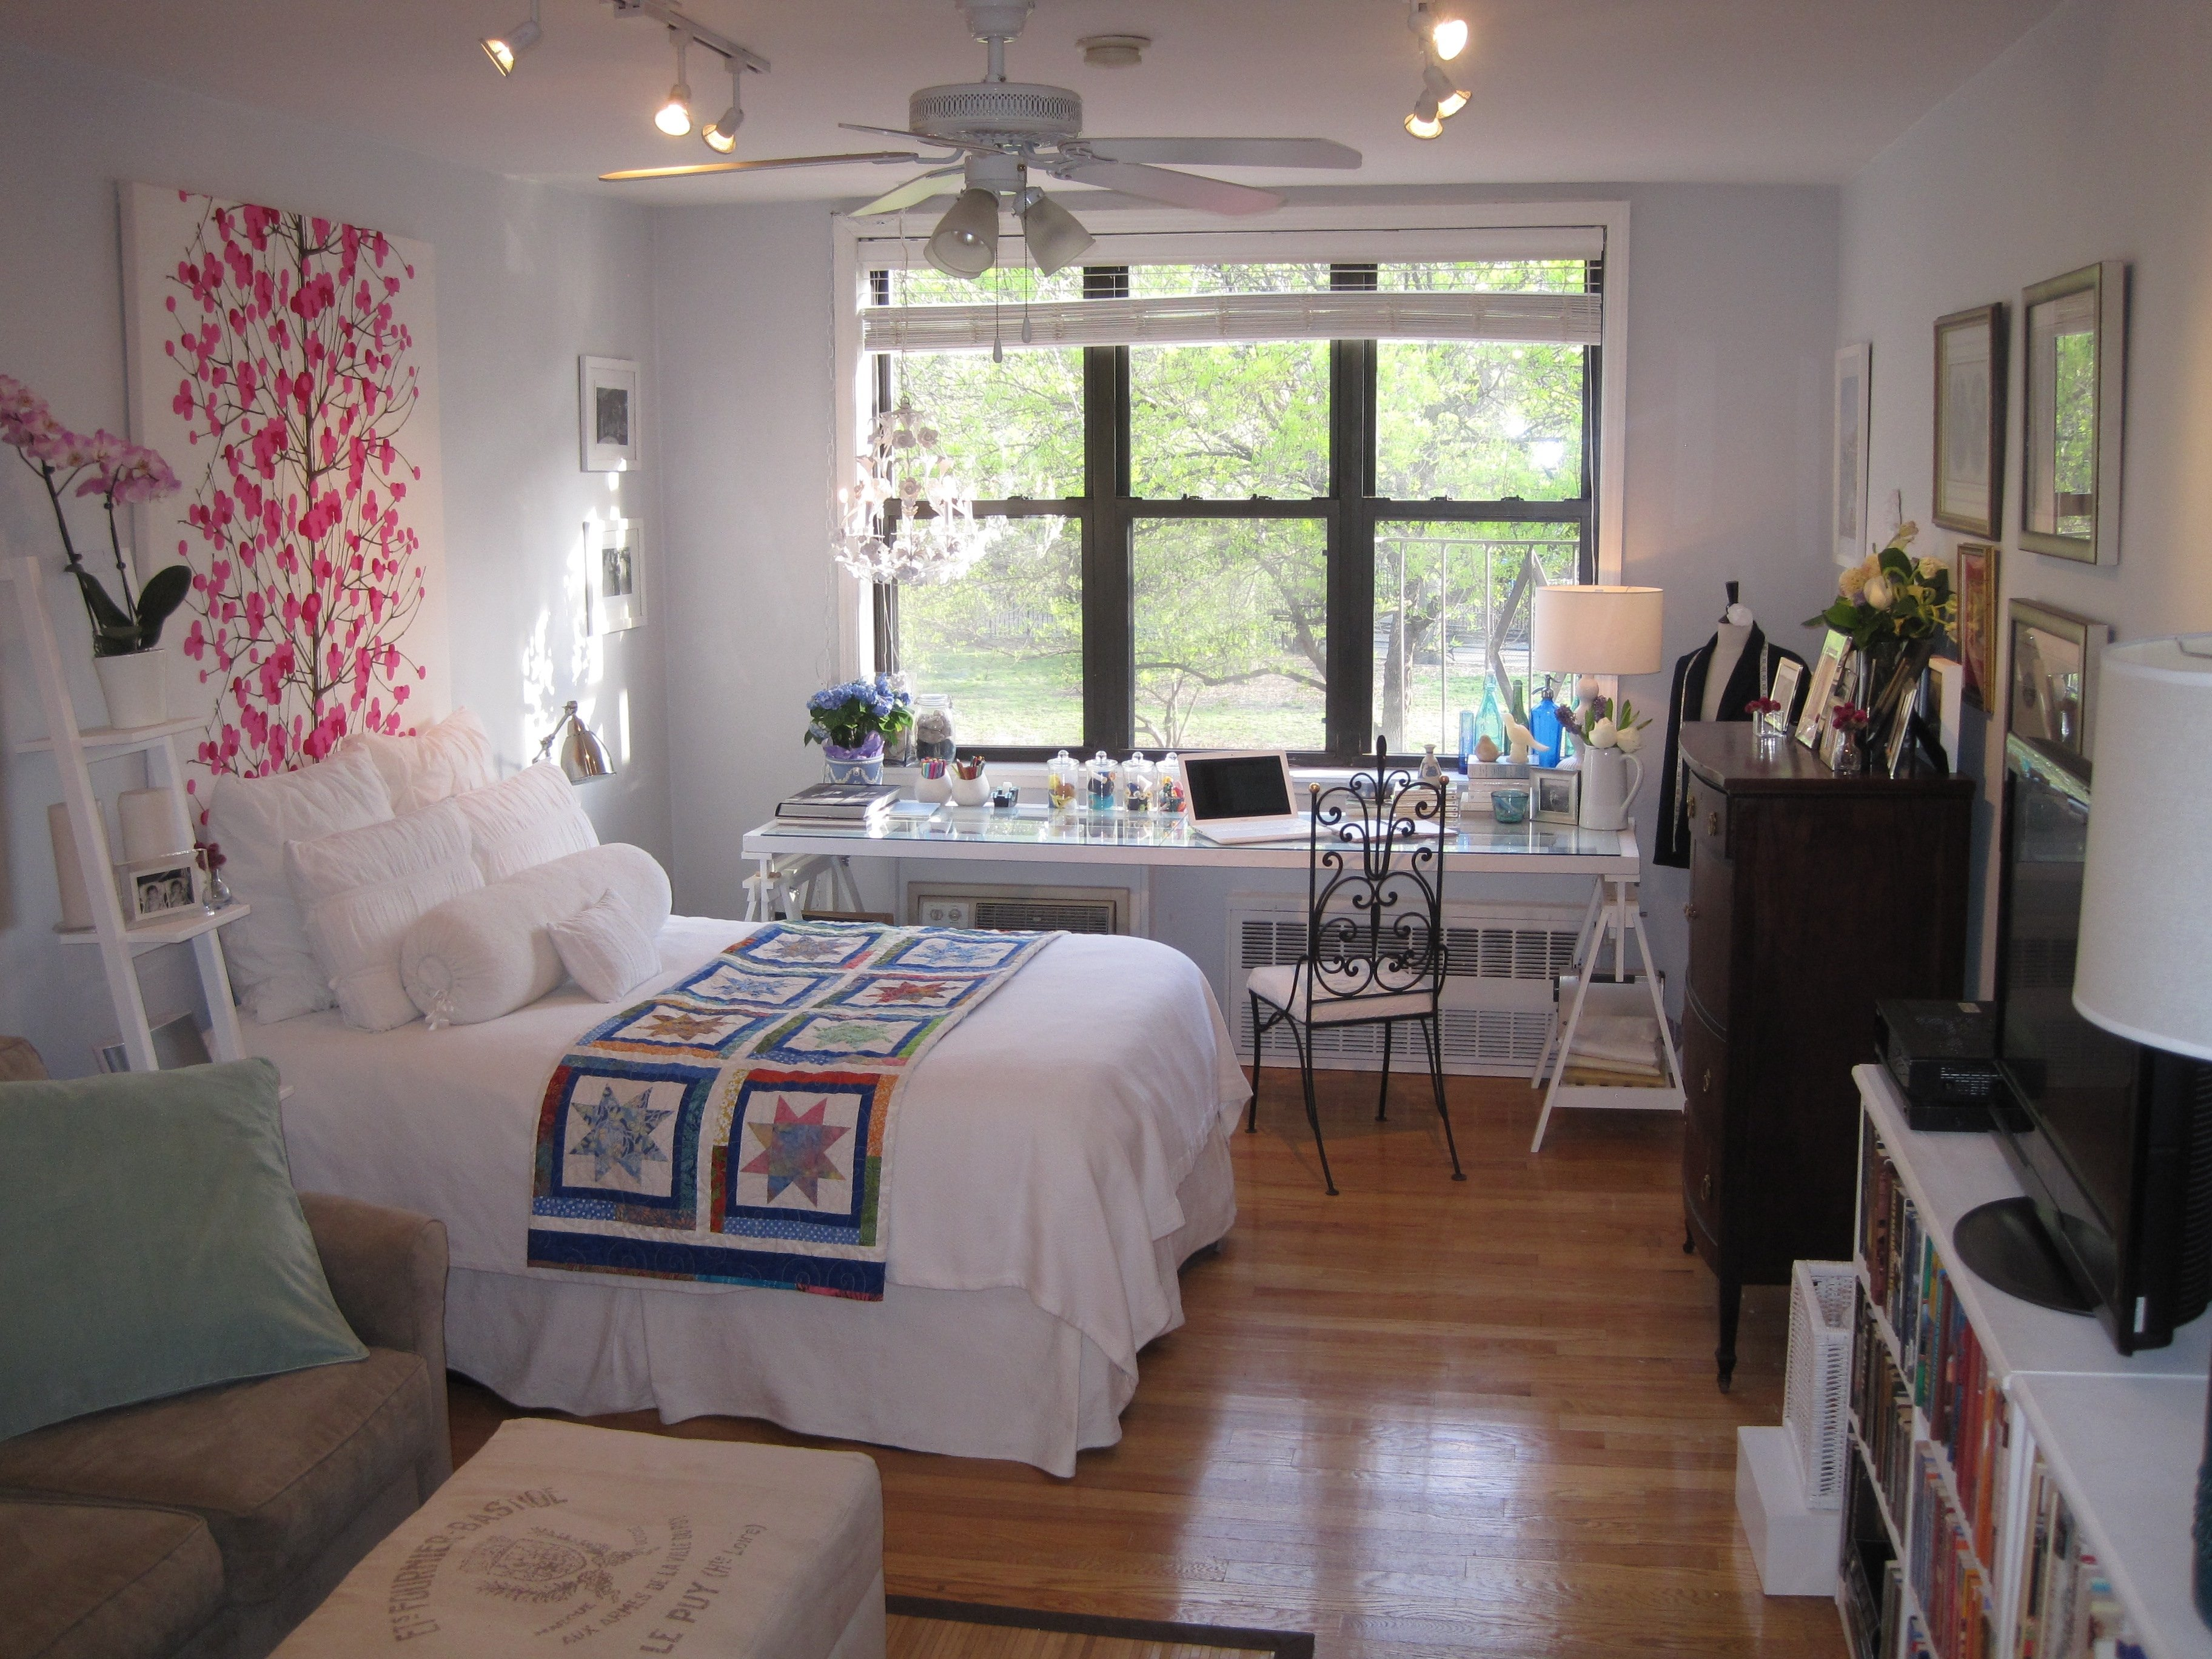 10 Ideal Small Studio Apartment Decorating Ideas ideas about small apartment layout on pinterest apartments and floor 2020